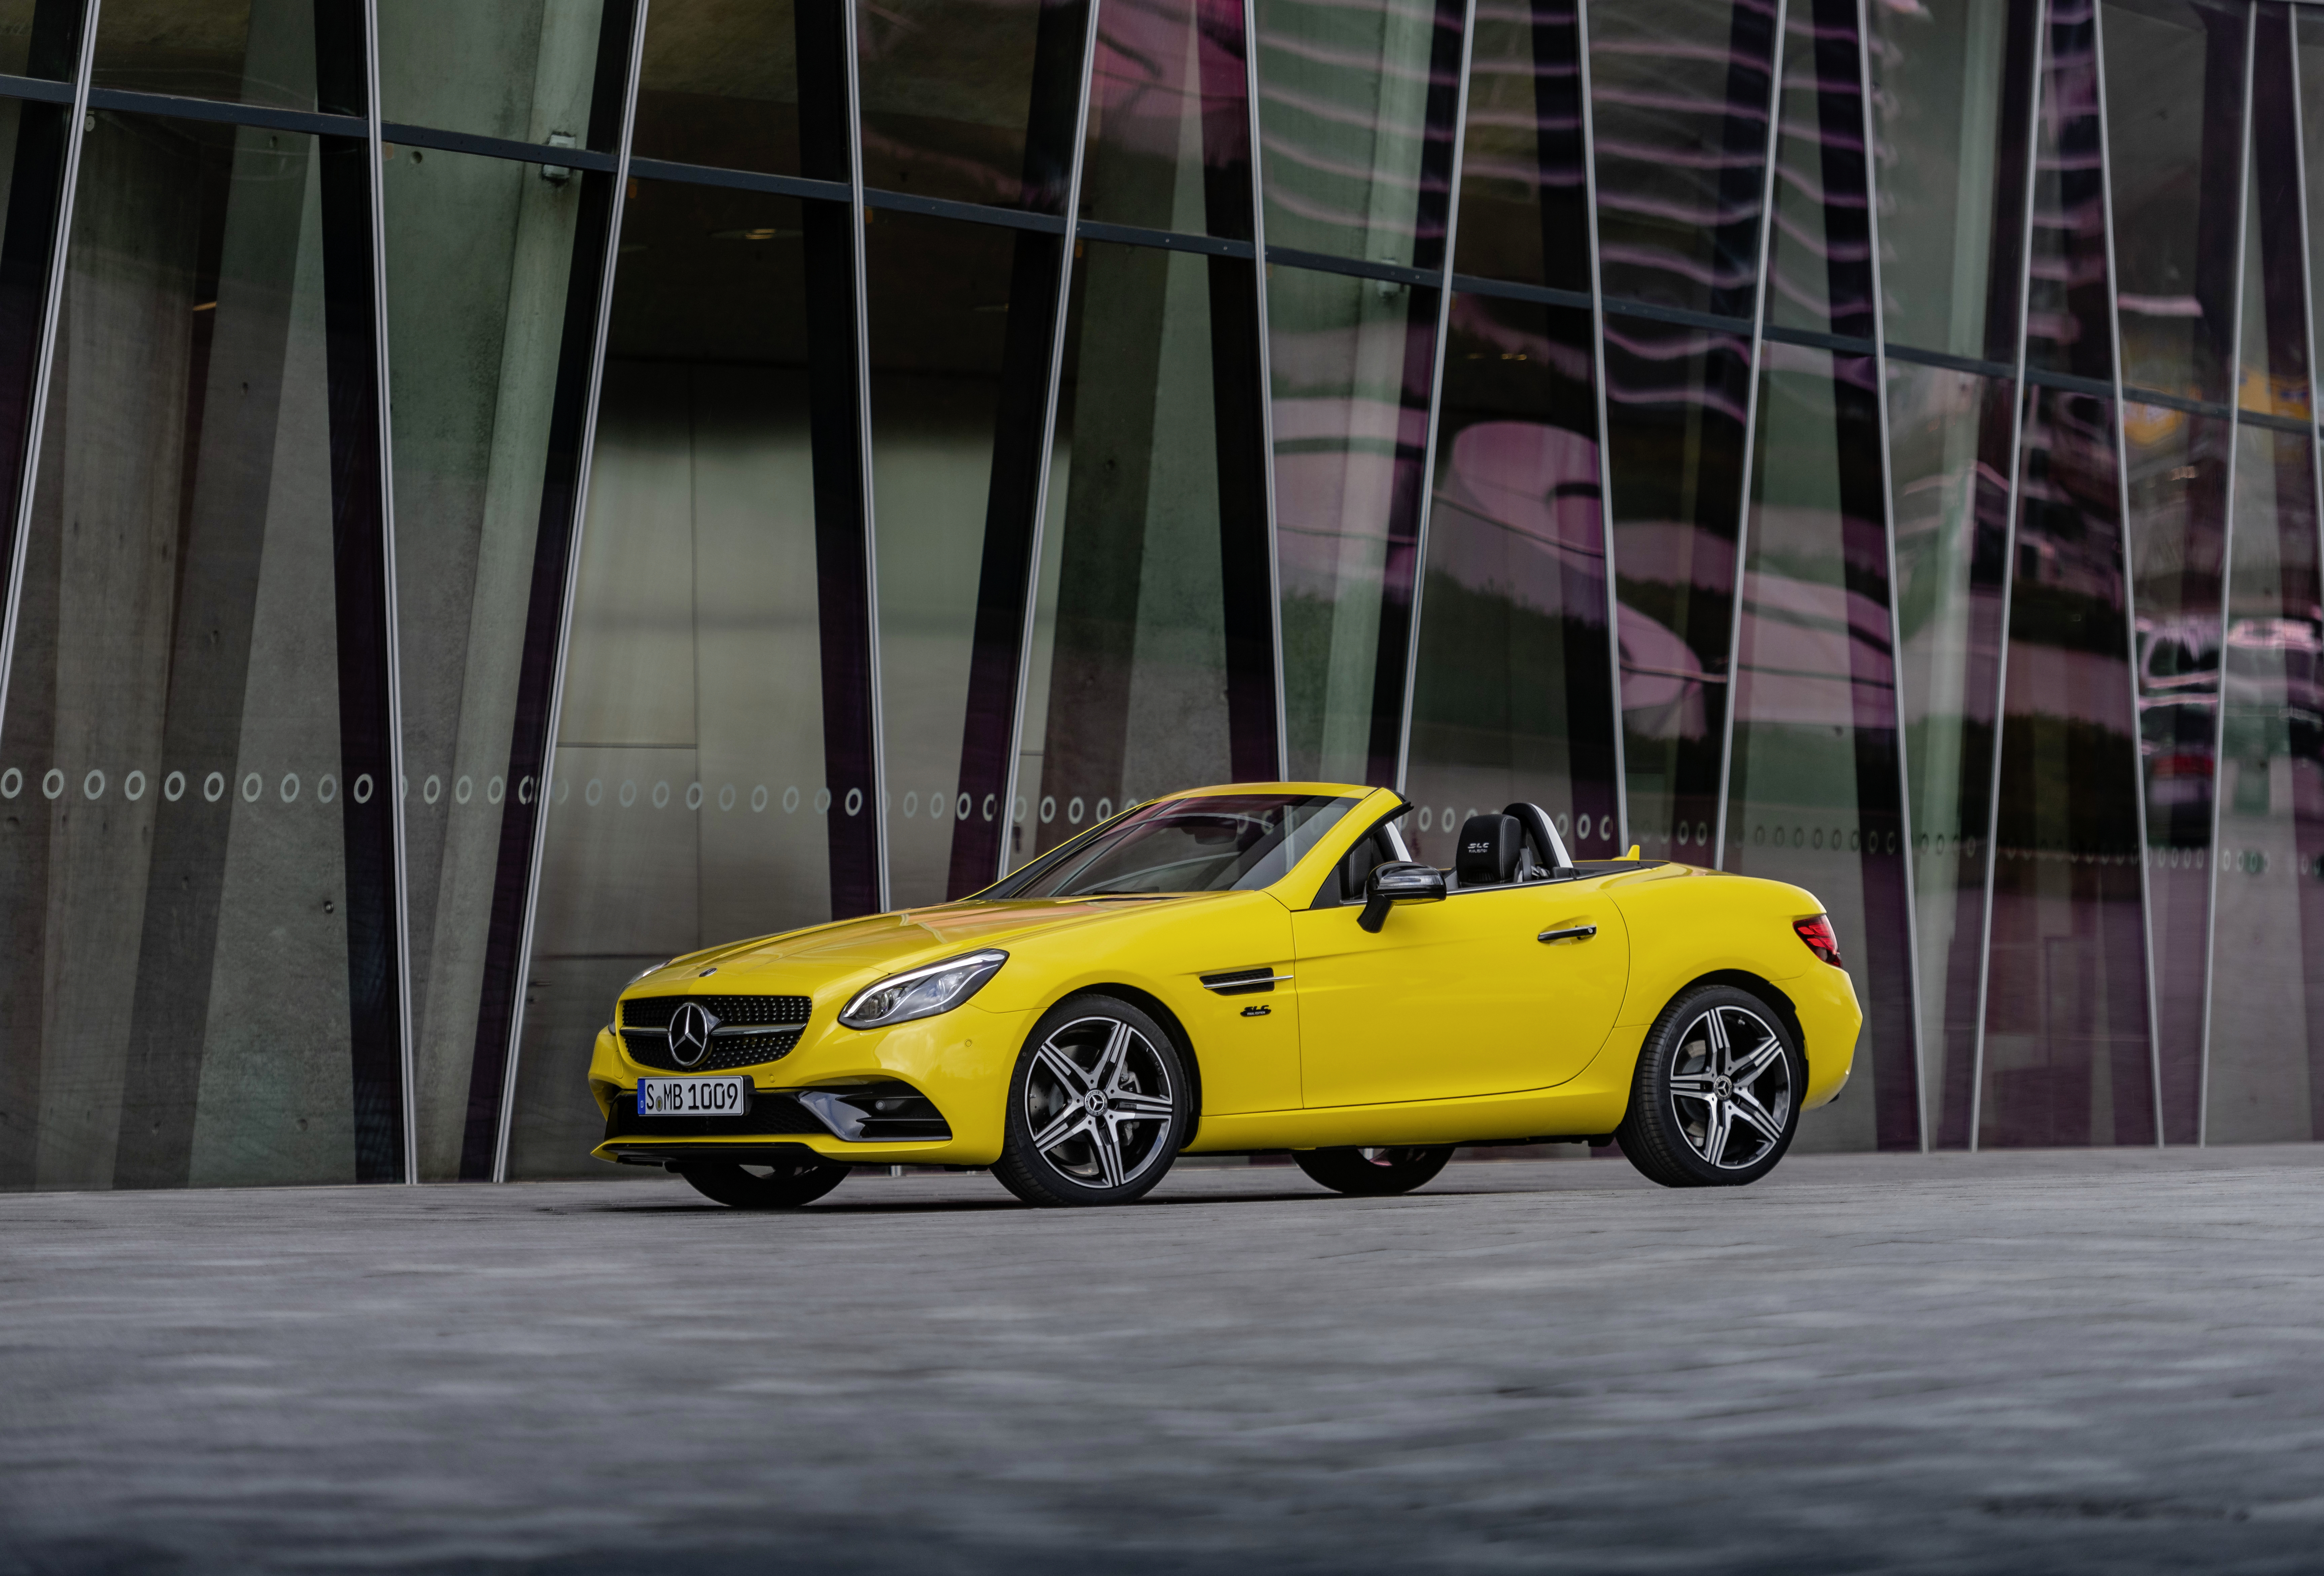 The SLC is available with one of three powertrain options